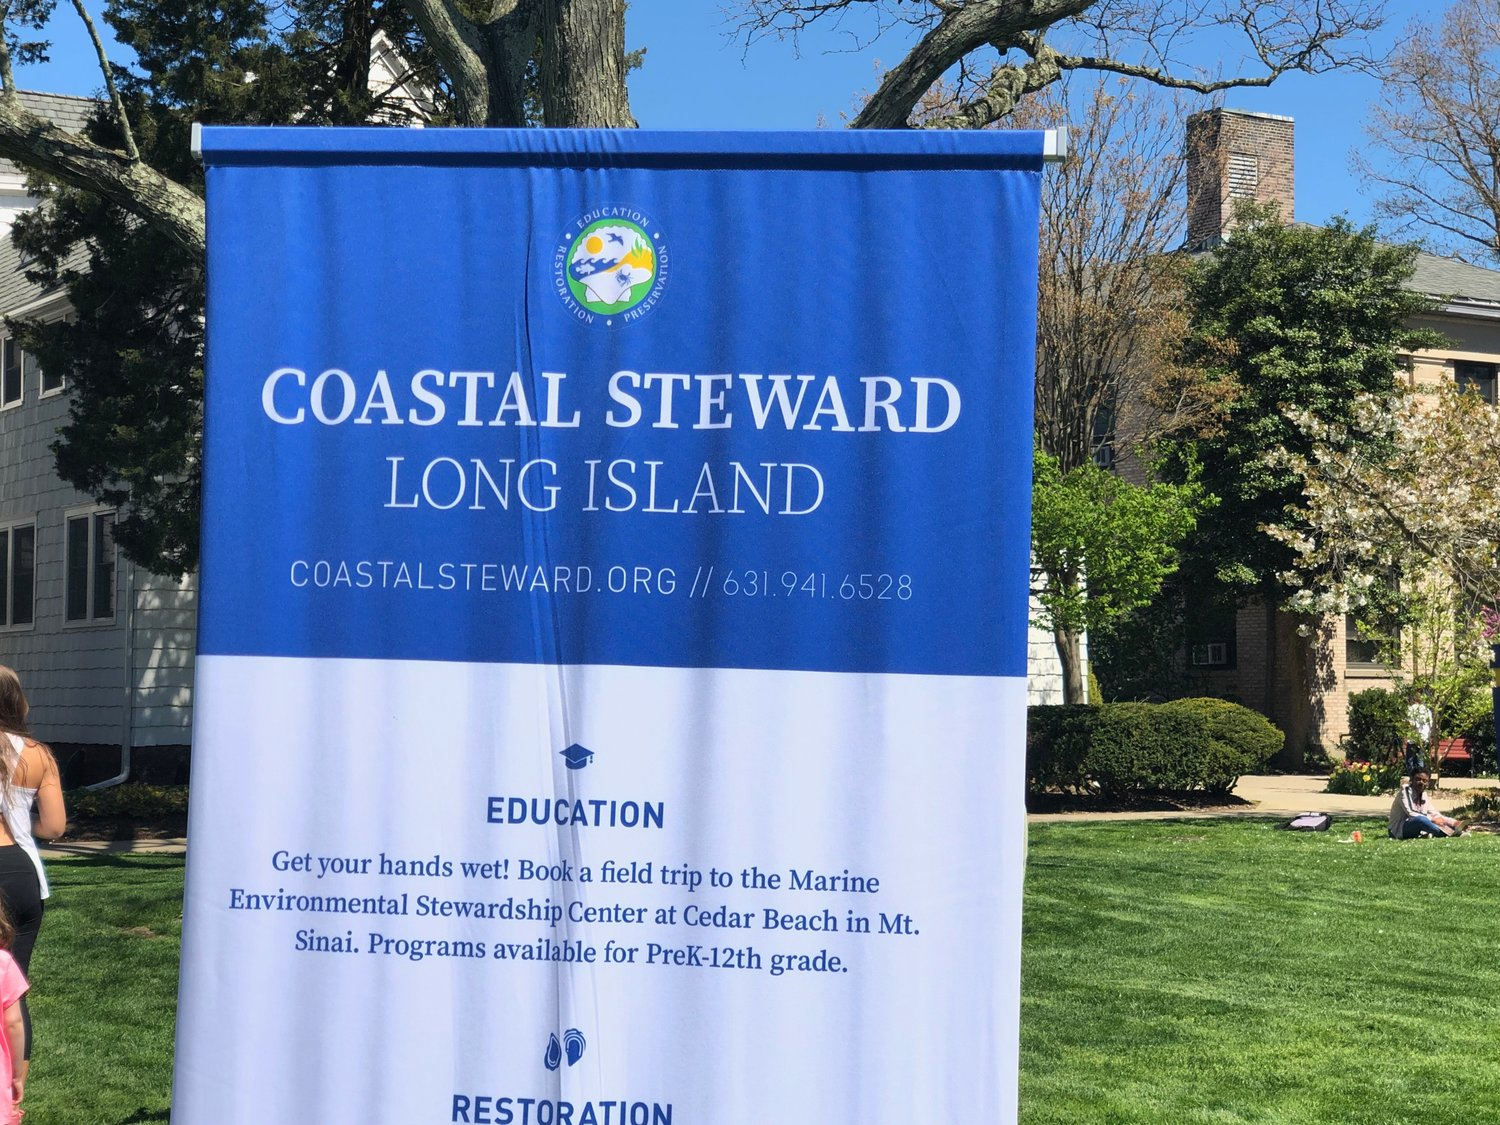 Coastal Steward Long Island was among the organizations that took part in the event.